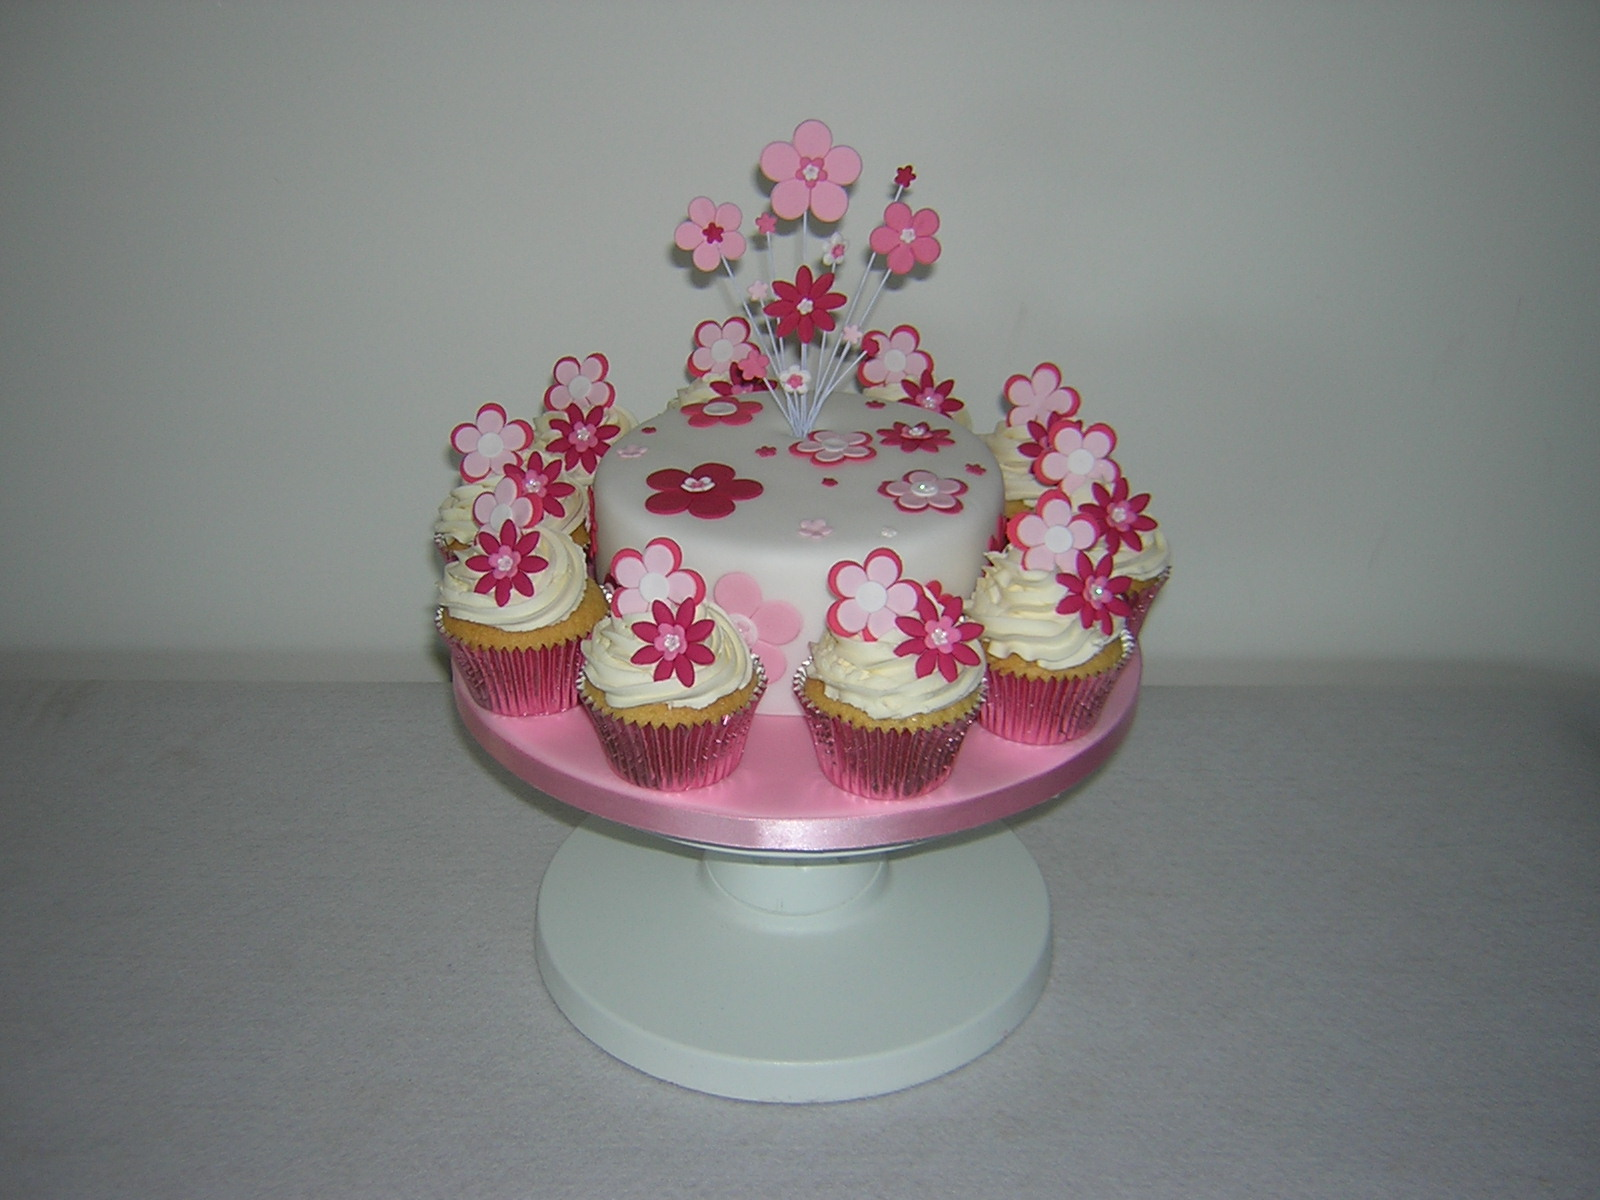 Index Of Wp Contentgallerycupcake Cakes